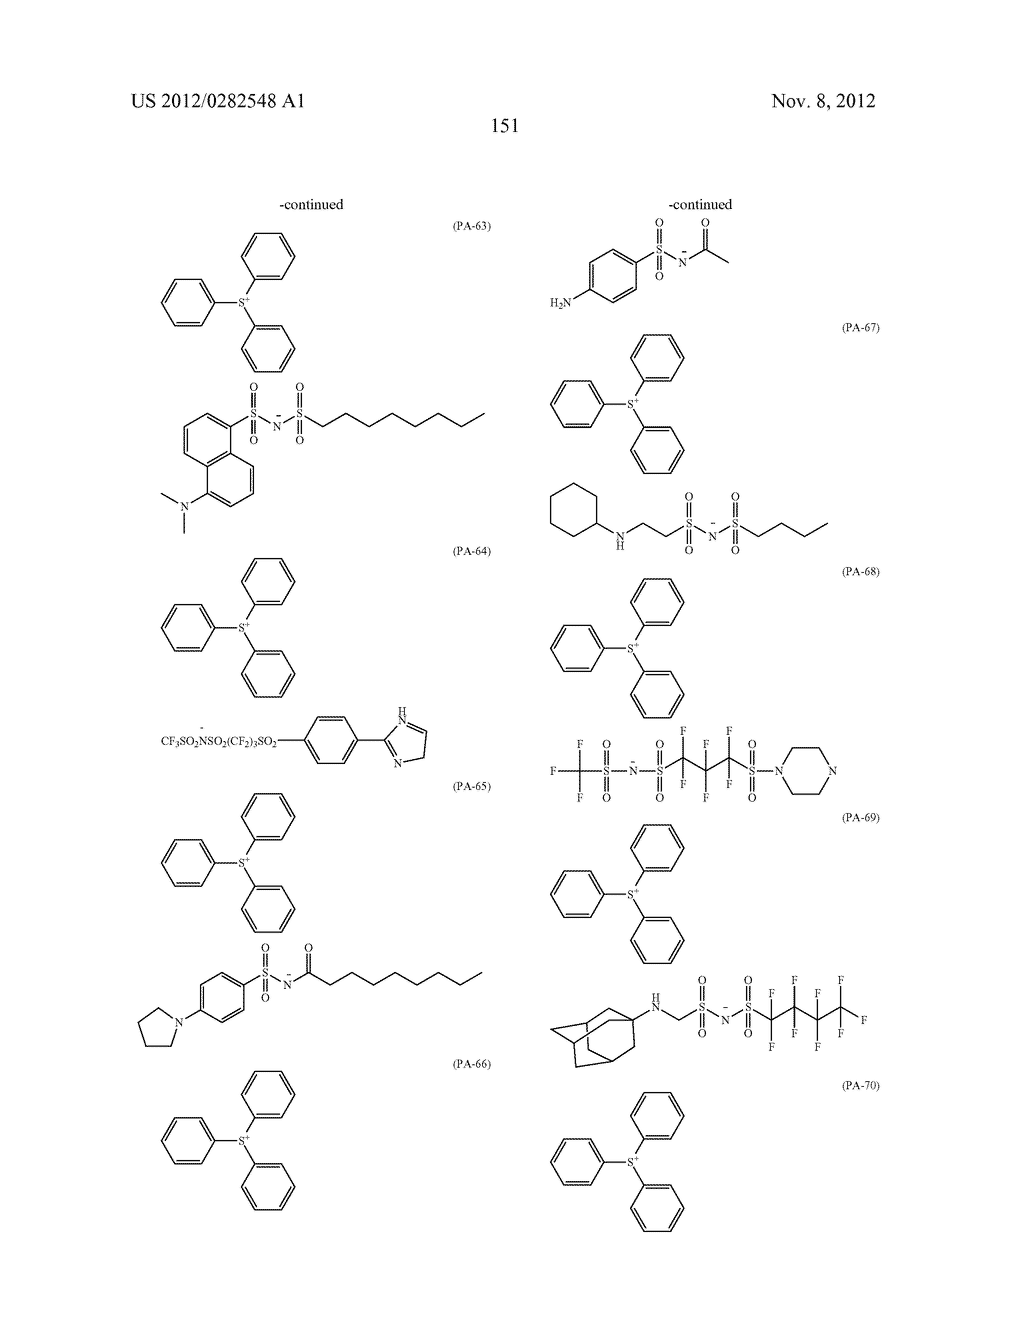 PATTERN FORMING METHOD, ACTINIC RAY-SENSITIVE OR RADIATION-SENSITIVE RESIN     COMPOSITION AND RESIST FILM - diagram, schematic, and image 152